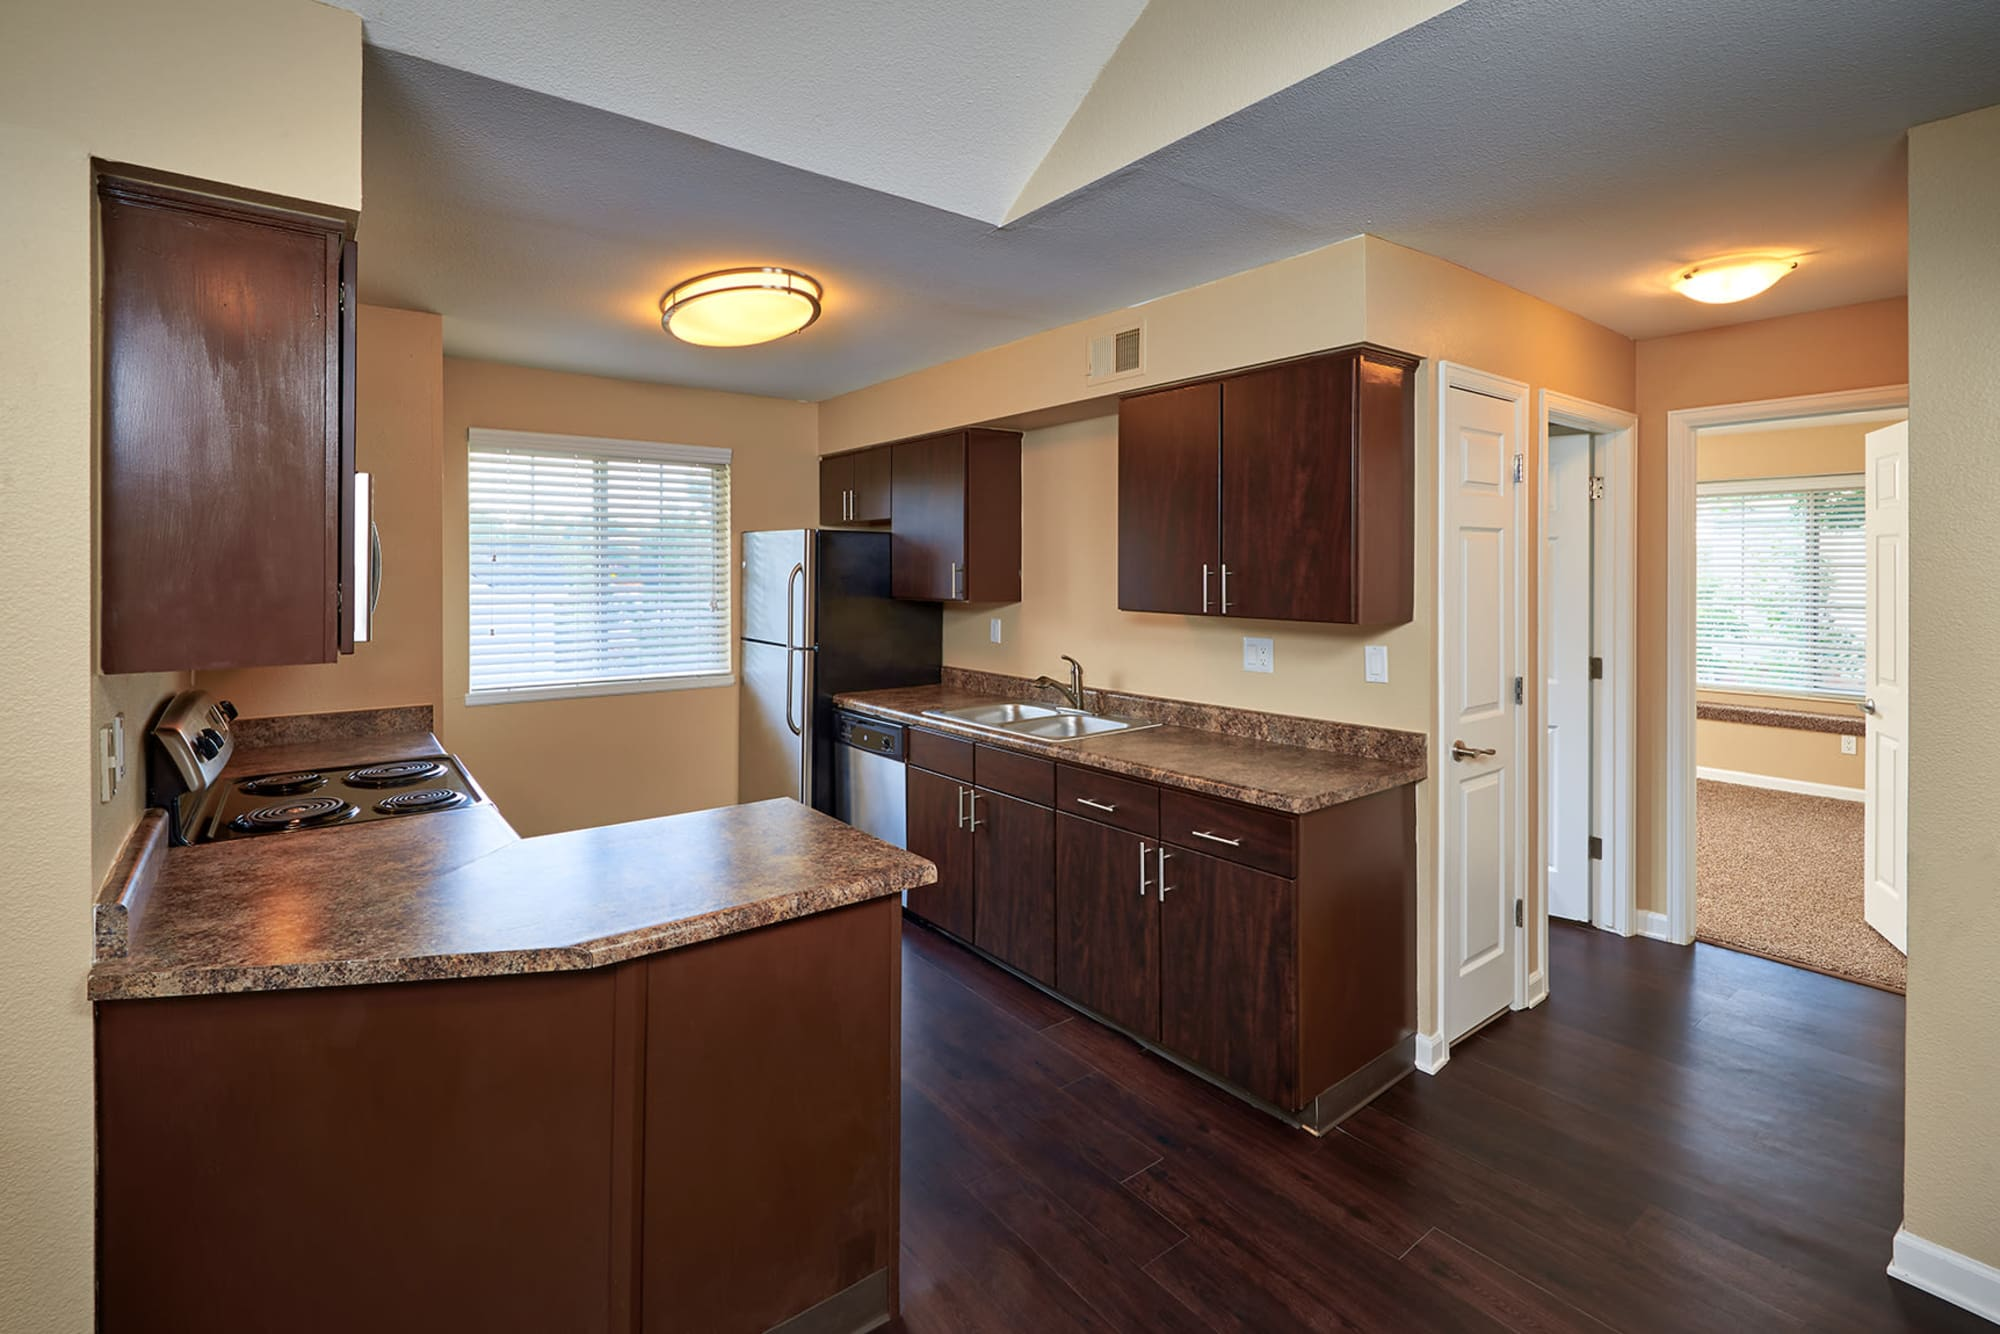 kitchens with brown cabinets at Villas at Homestead Apartments